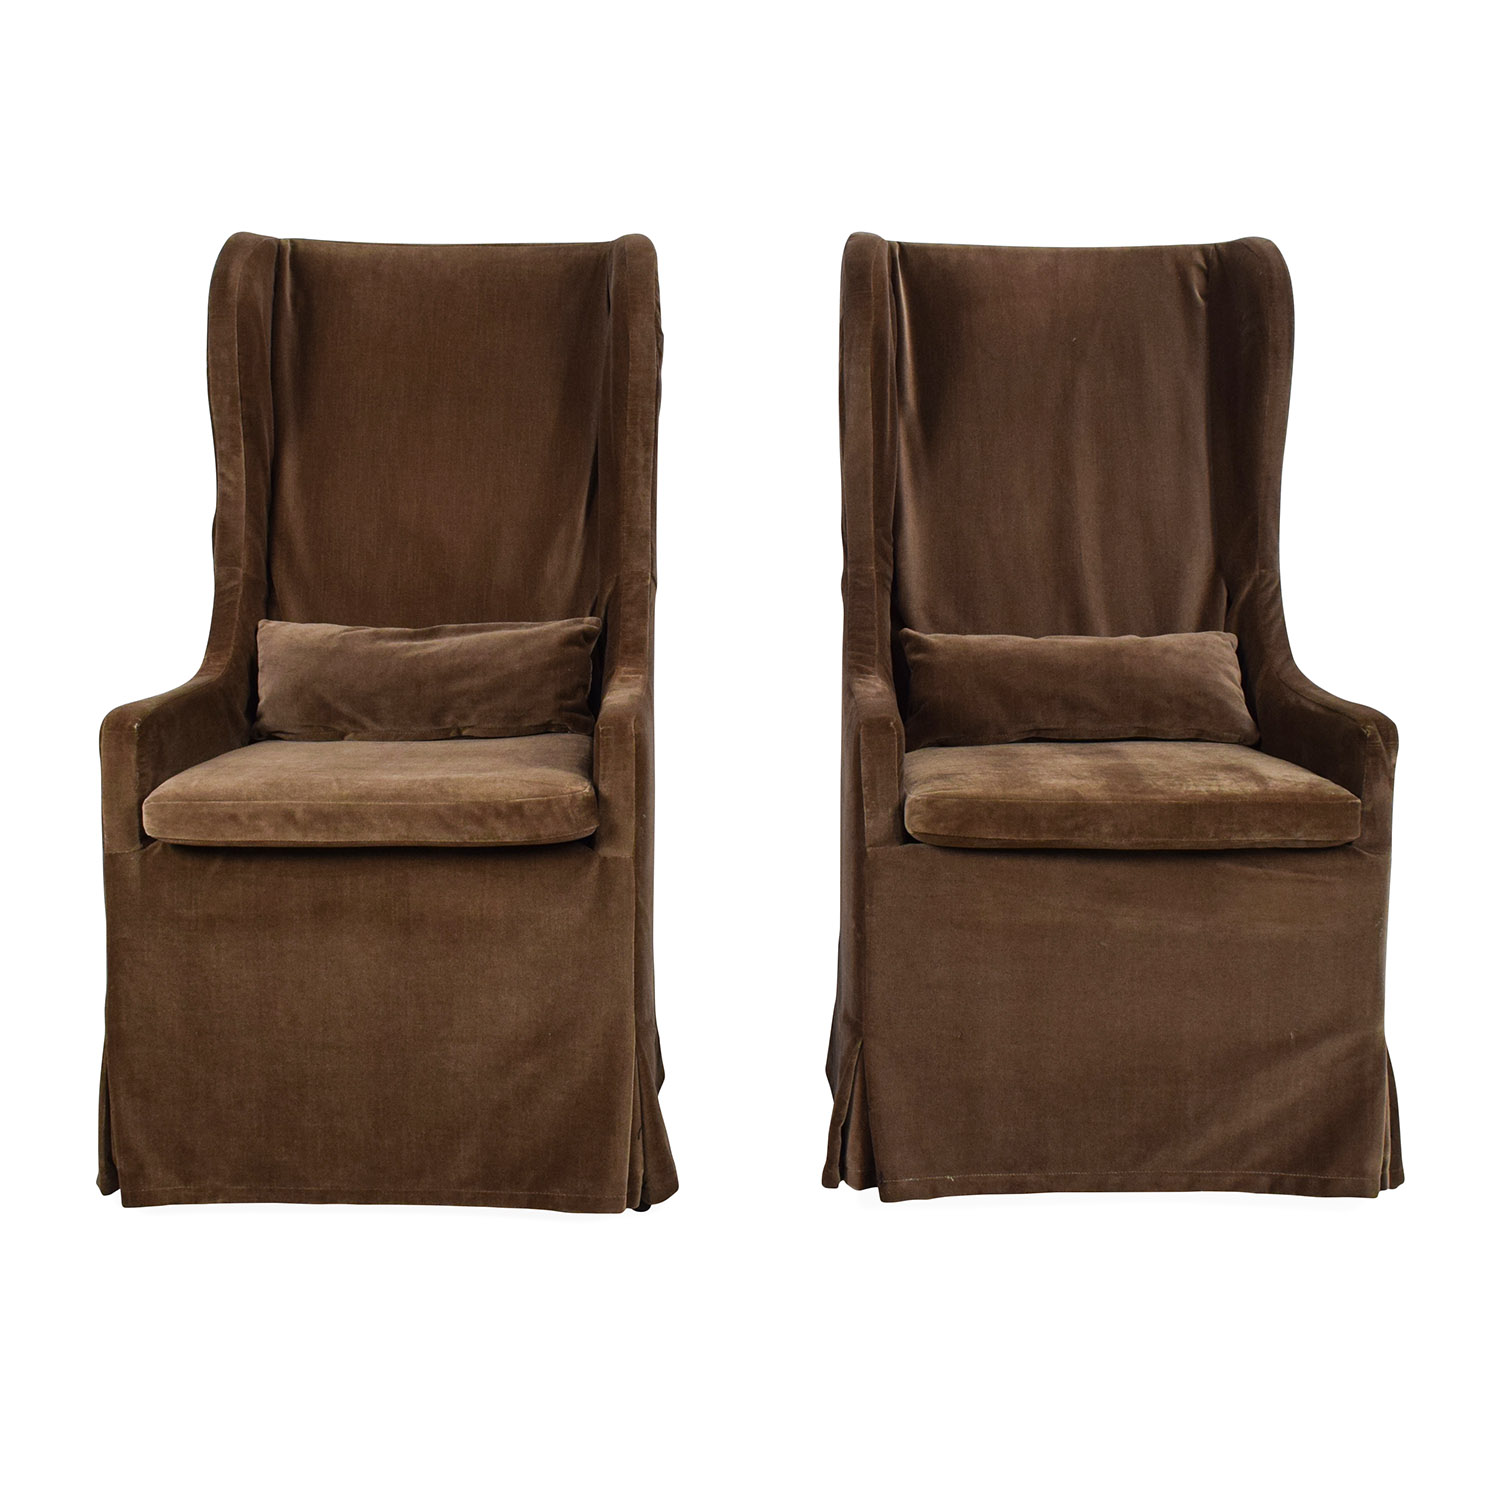 Restoration Hardware Restoration Hardware Belgian Wingback Chair Pair second hand